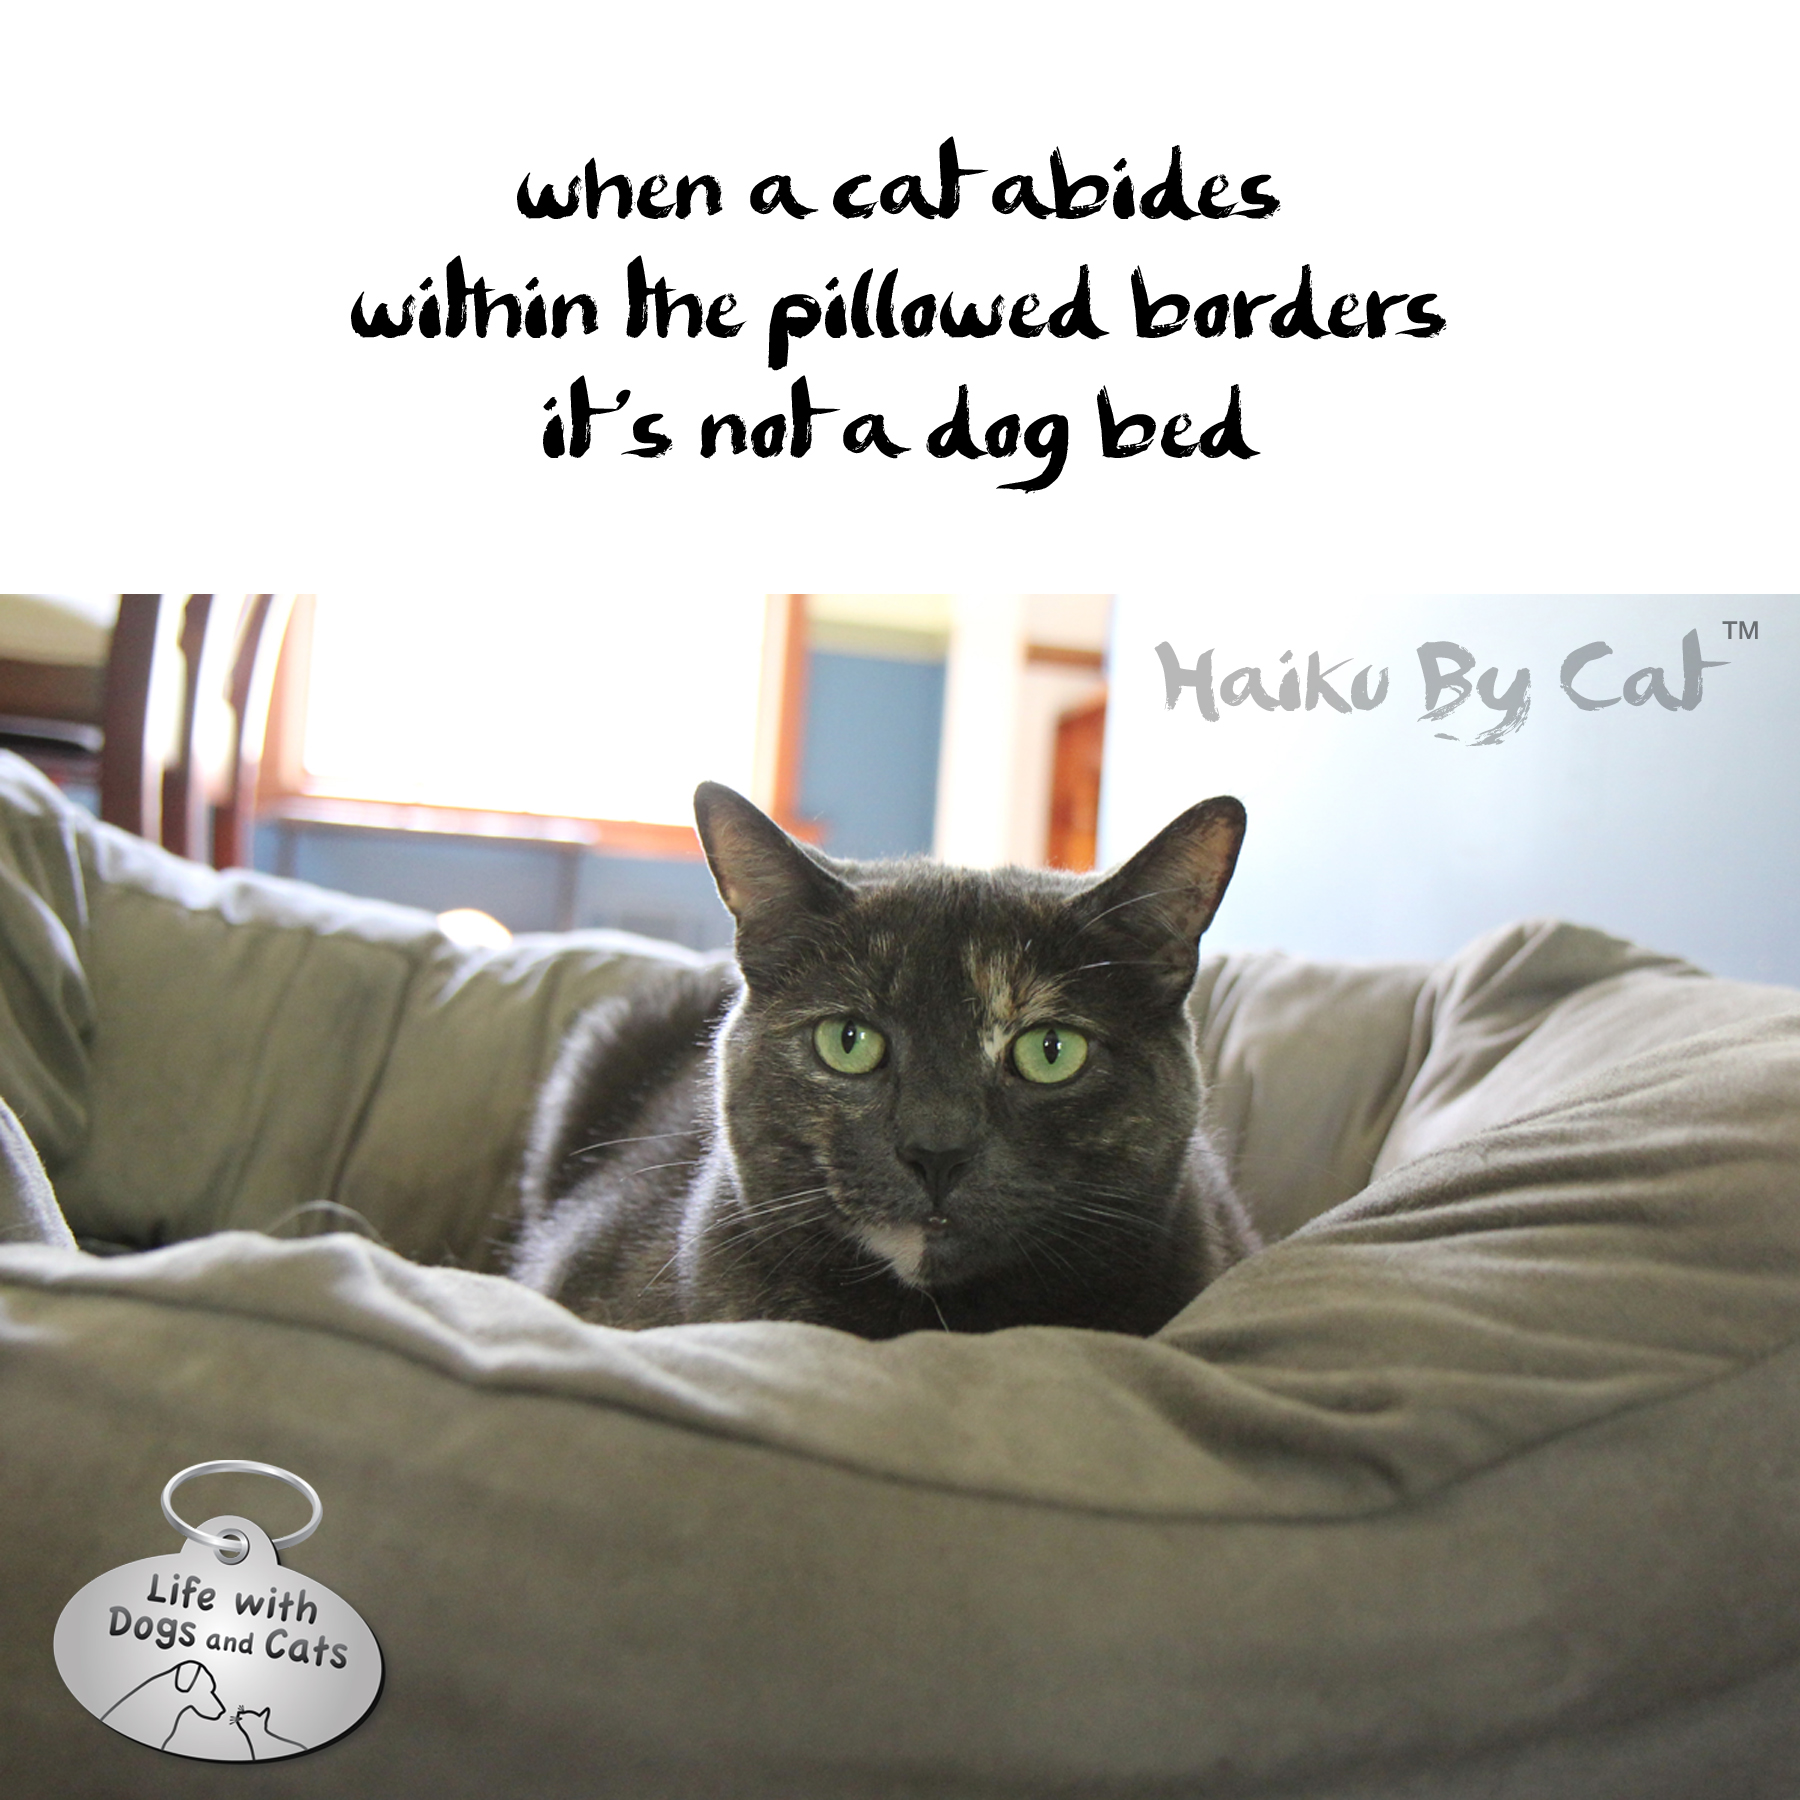 haiku by cat abide life with dogs and cats